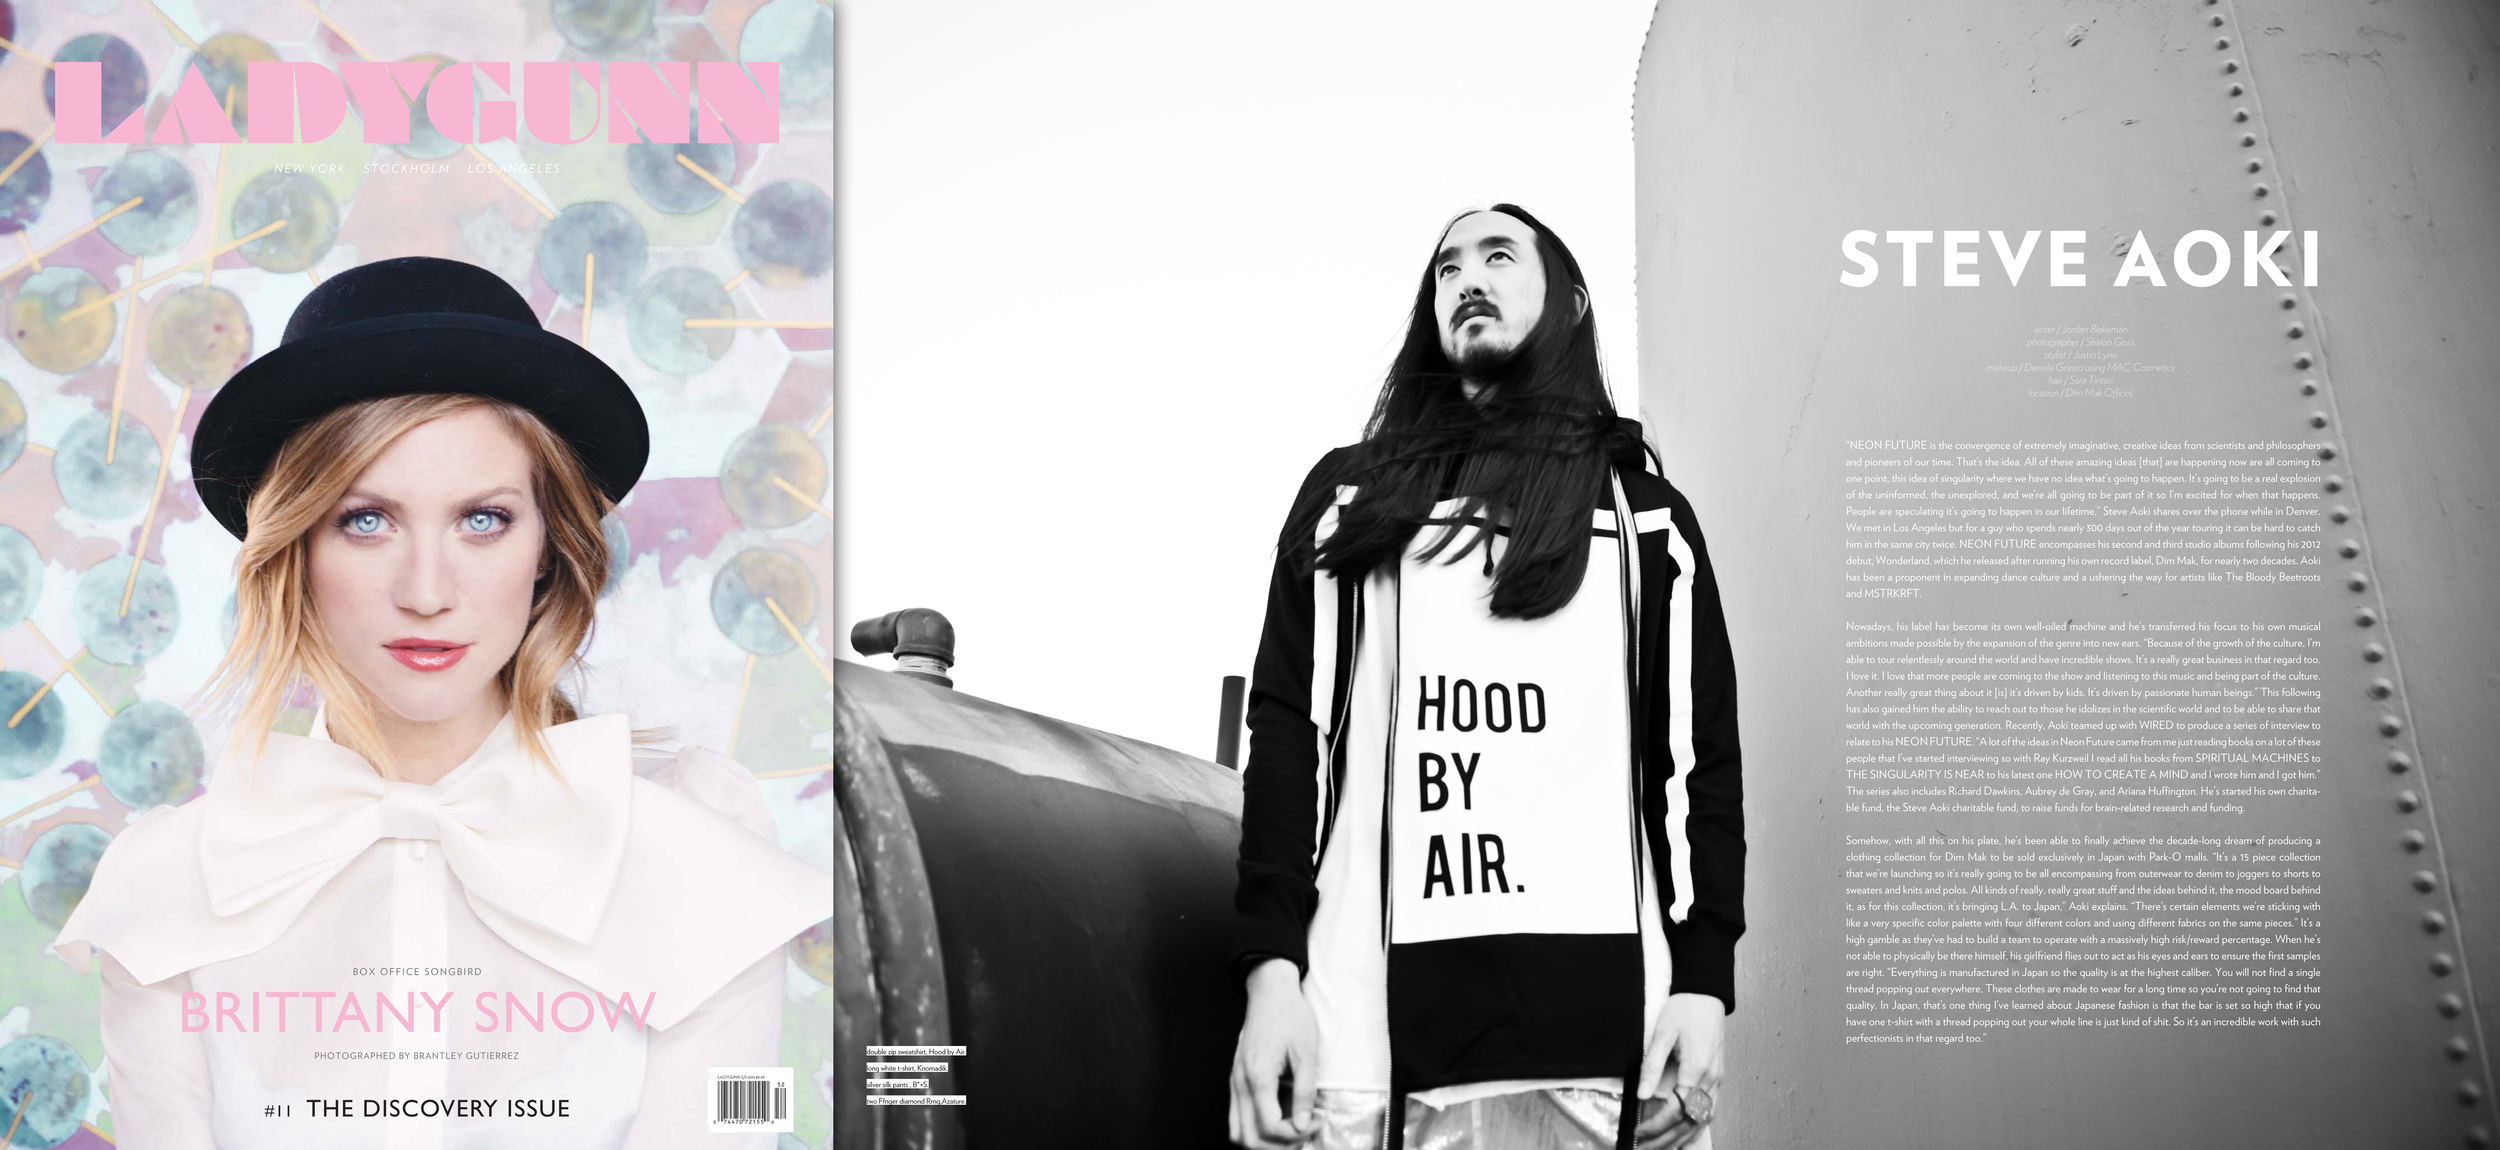 Steve Aoki featured in 'LadyGunn' Magazine #11